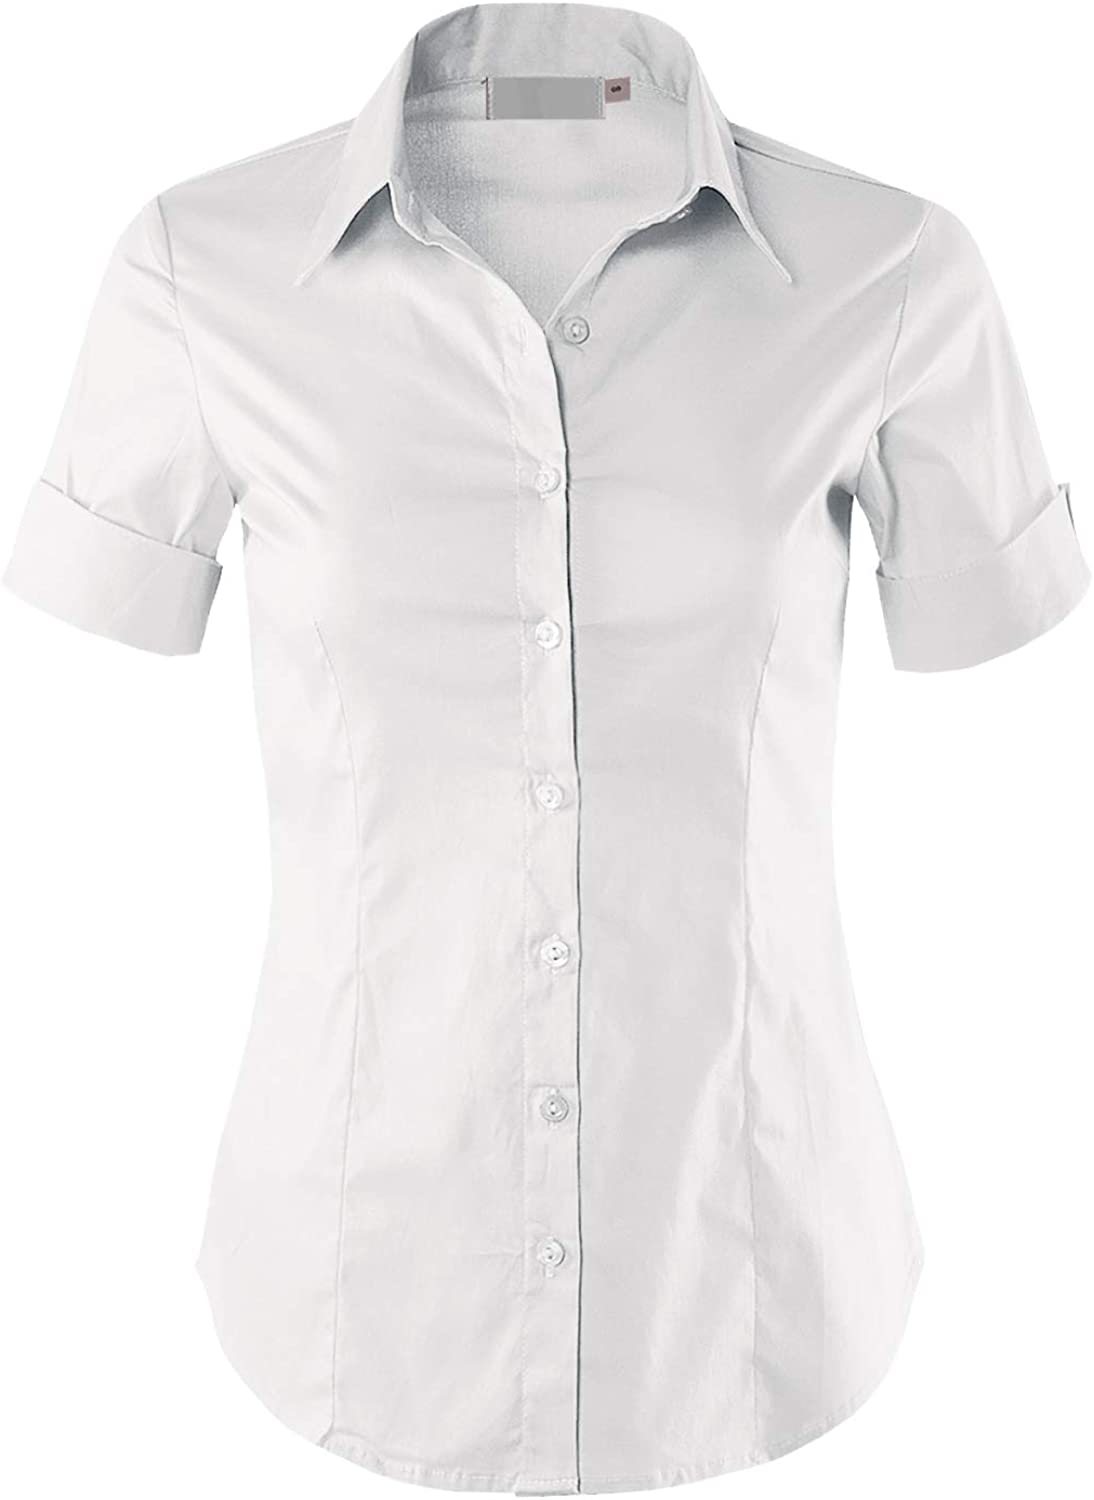 MAYSIX APPAREL Short Sleeve Daily Max 84% OFF bargain sale Stretchy F Button Down Office Collar